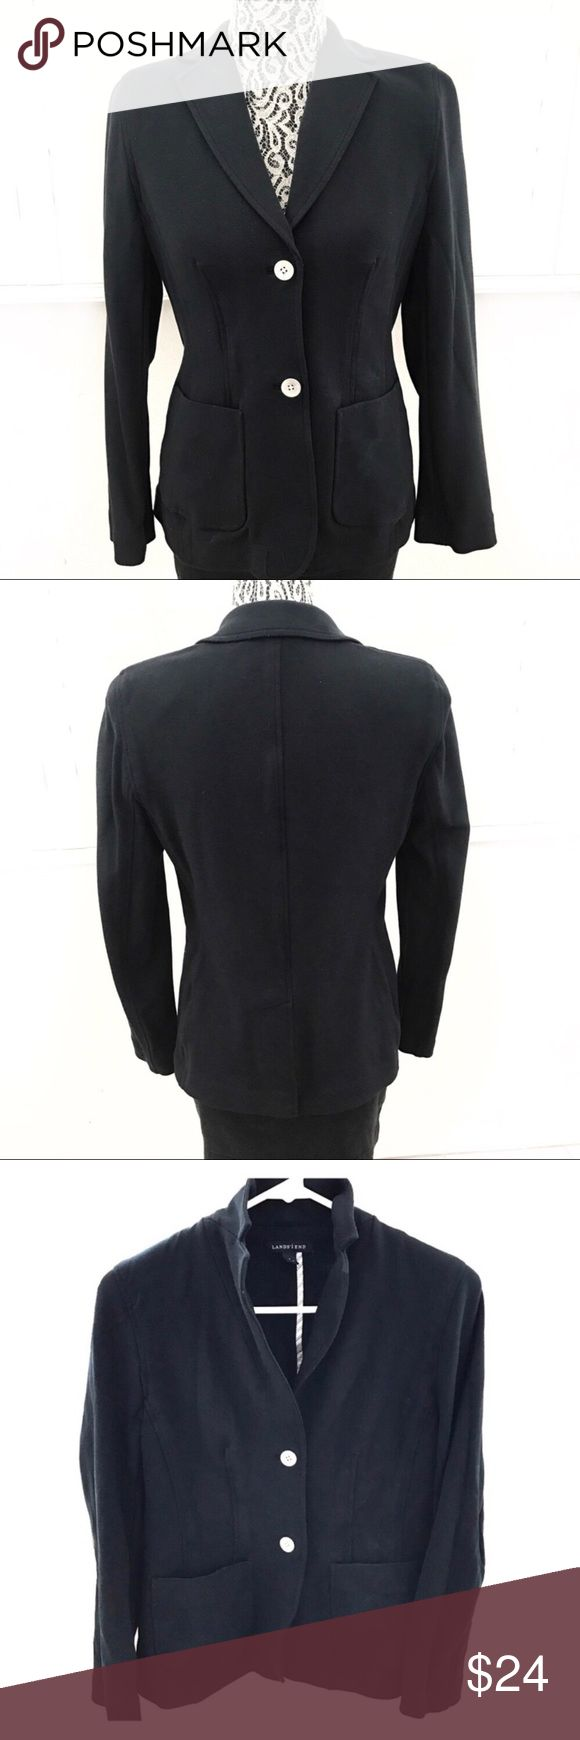 """Lands' End classic cotton blazer size 6 Classic blazer from Lands End. Great for work, weekend, or travel.  Well-loved and a bit faded in a few spots (see pics) but still extremely wearable.  👜Pit to pit 17"""" 👜Sleeve 22"""" 👜Shoulder 14"""" 👜Length 24.5""""  Tags: work , weekend , travel , classic , preppy chic , school girl Halloween costume , navy blazer Lands' End Jackets & Coats Blazers"""